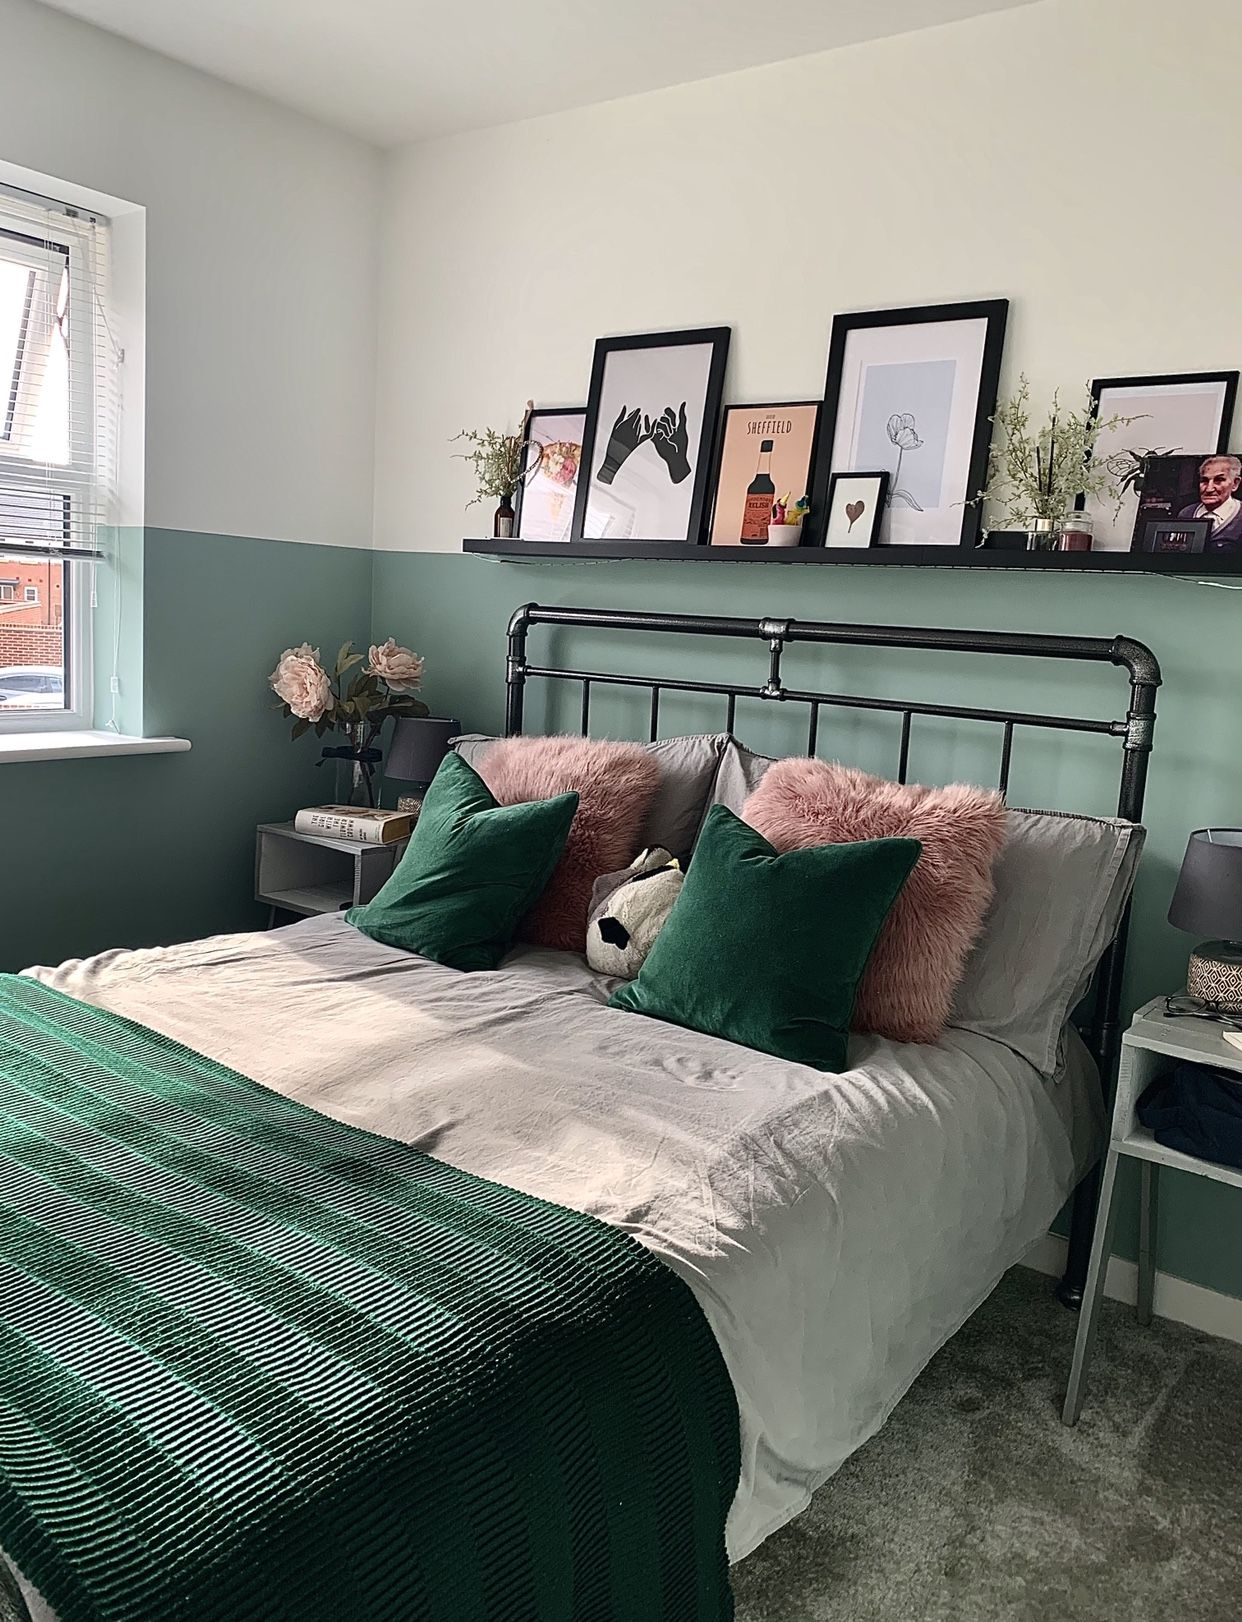 Half wall paint design in 2020 | Feature wall bedroom ...